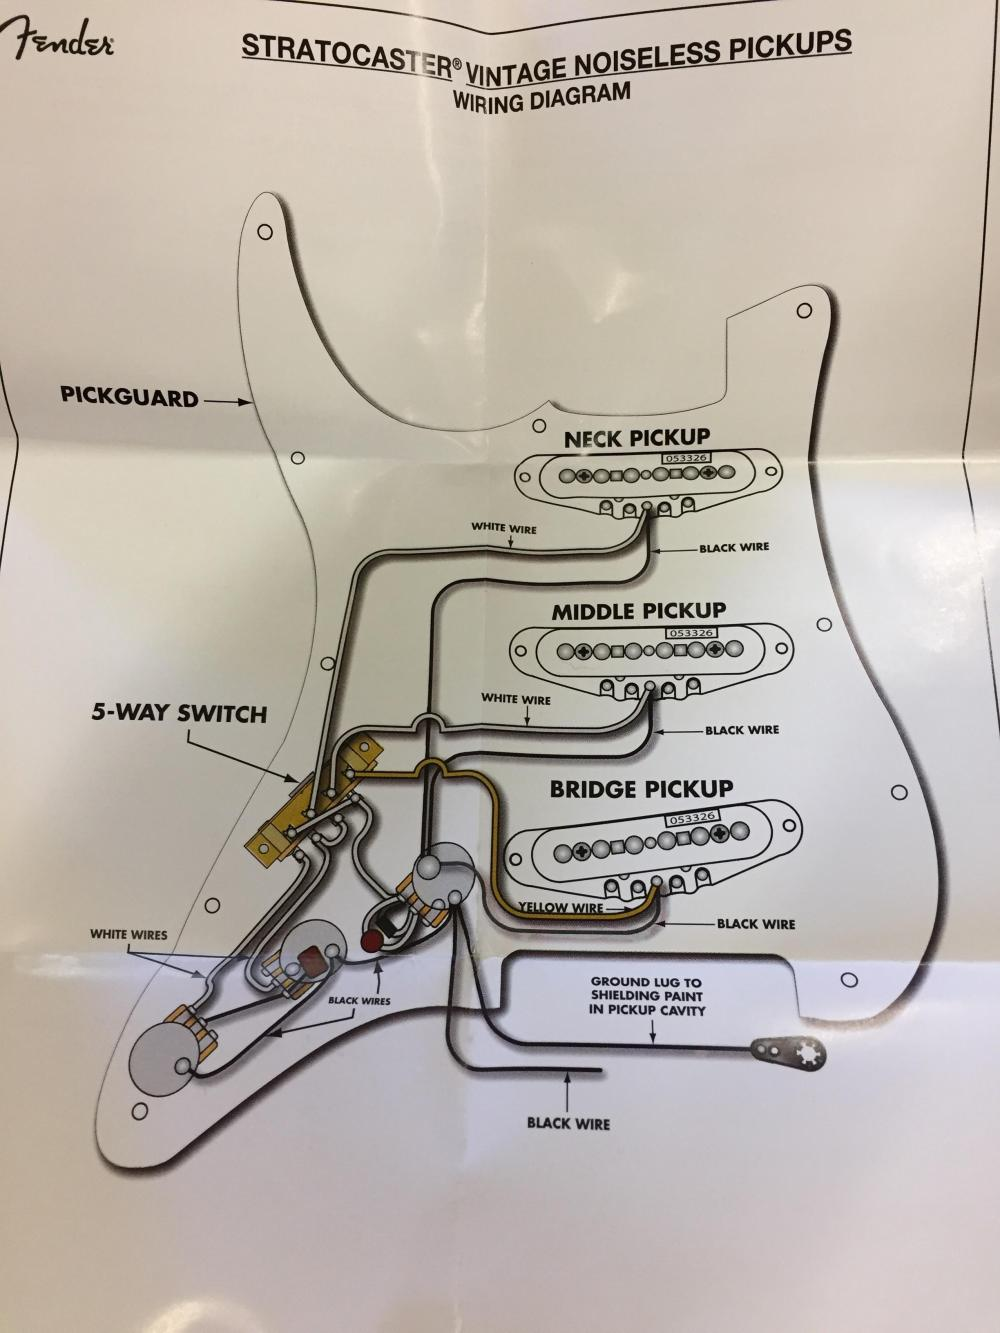 medium resolution of vintage noiseless pickups wiring diagram discrepancy luthier active pickup wiring vintage noiseless pickups wiring diagram